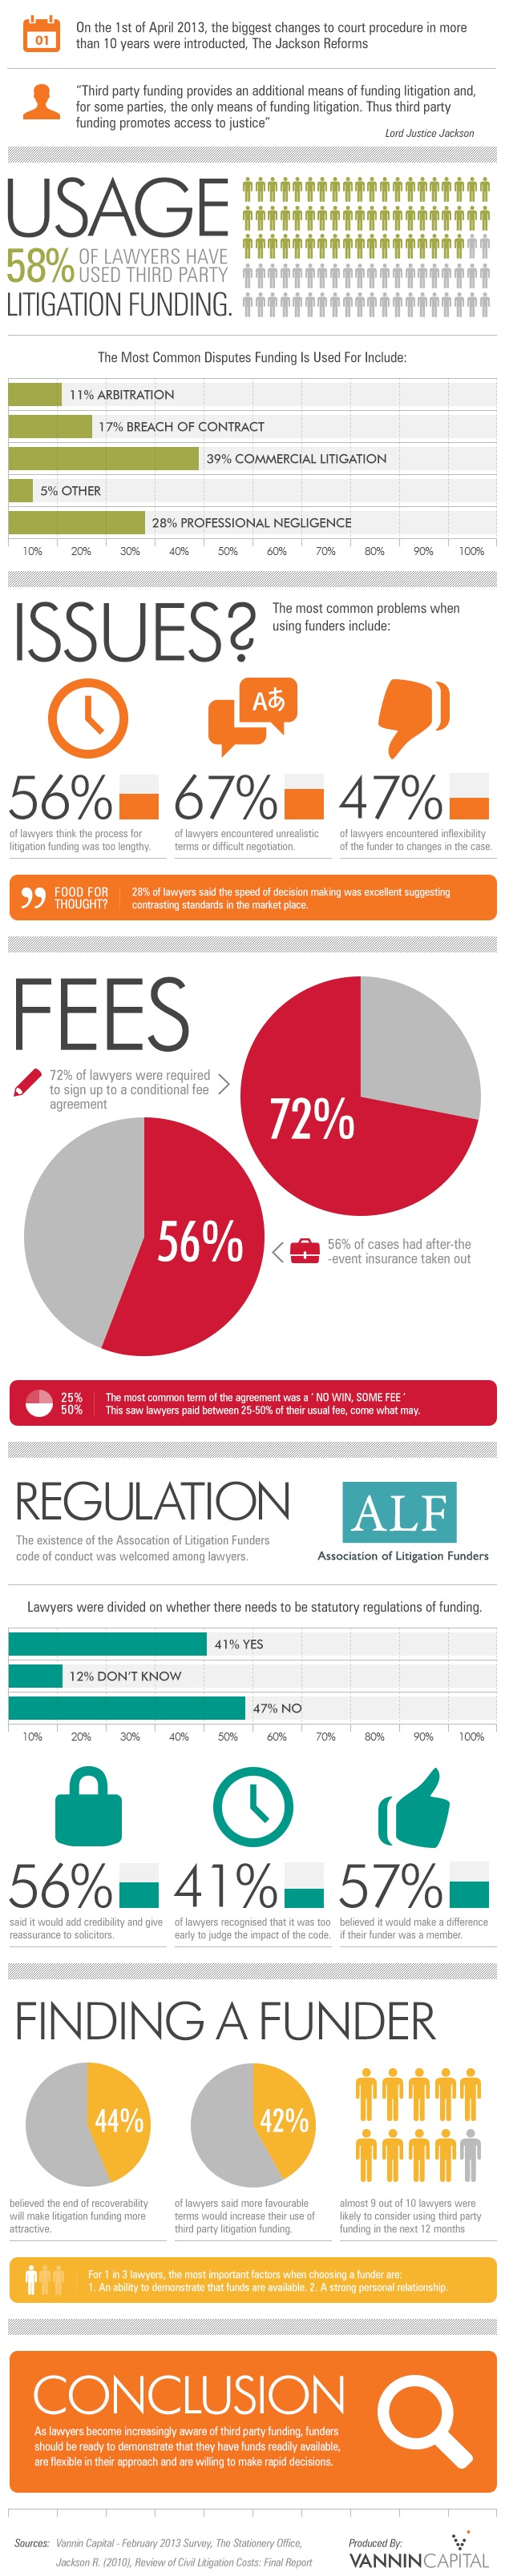 Litigation Funding in UK-Infographic